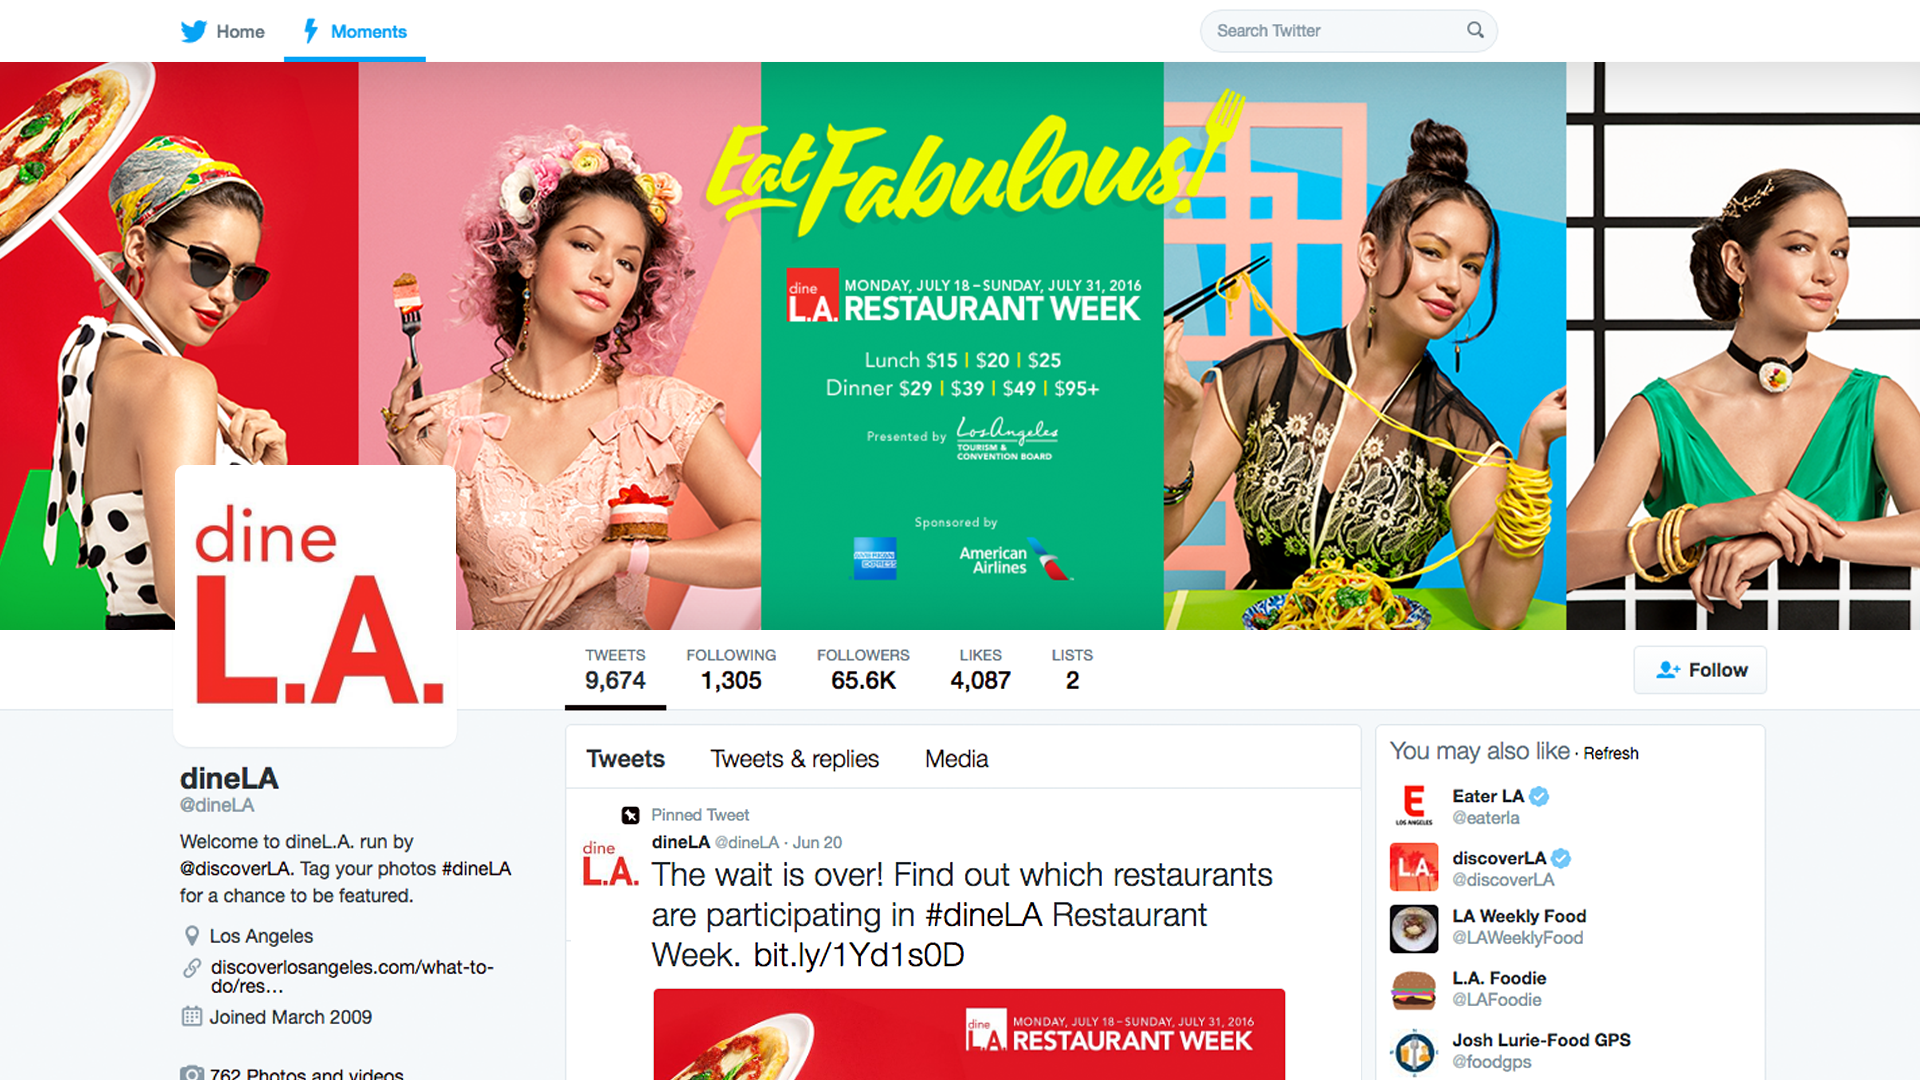 Eat Fabulous! ad campaign Twitter for dineL.A. and L.A. Tourism & Convention Board by Tom Morhous and Remo+Oob, Ltd.